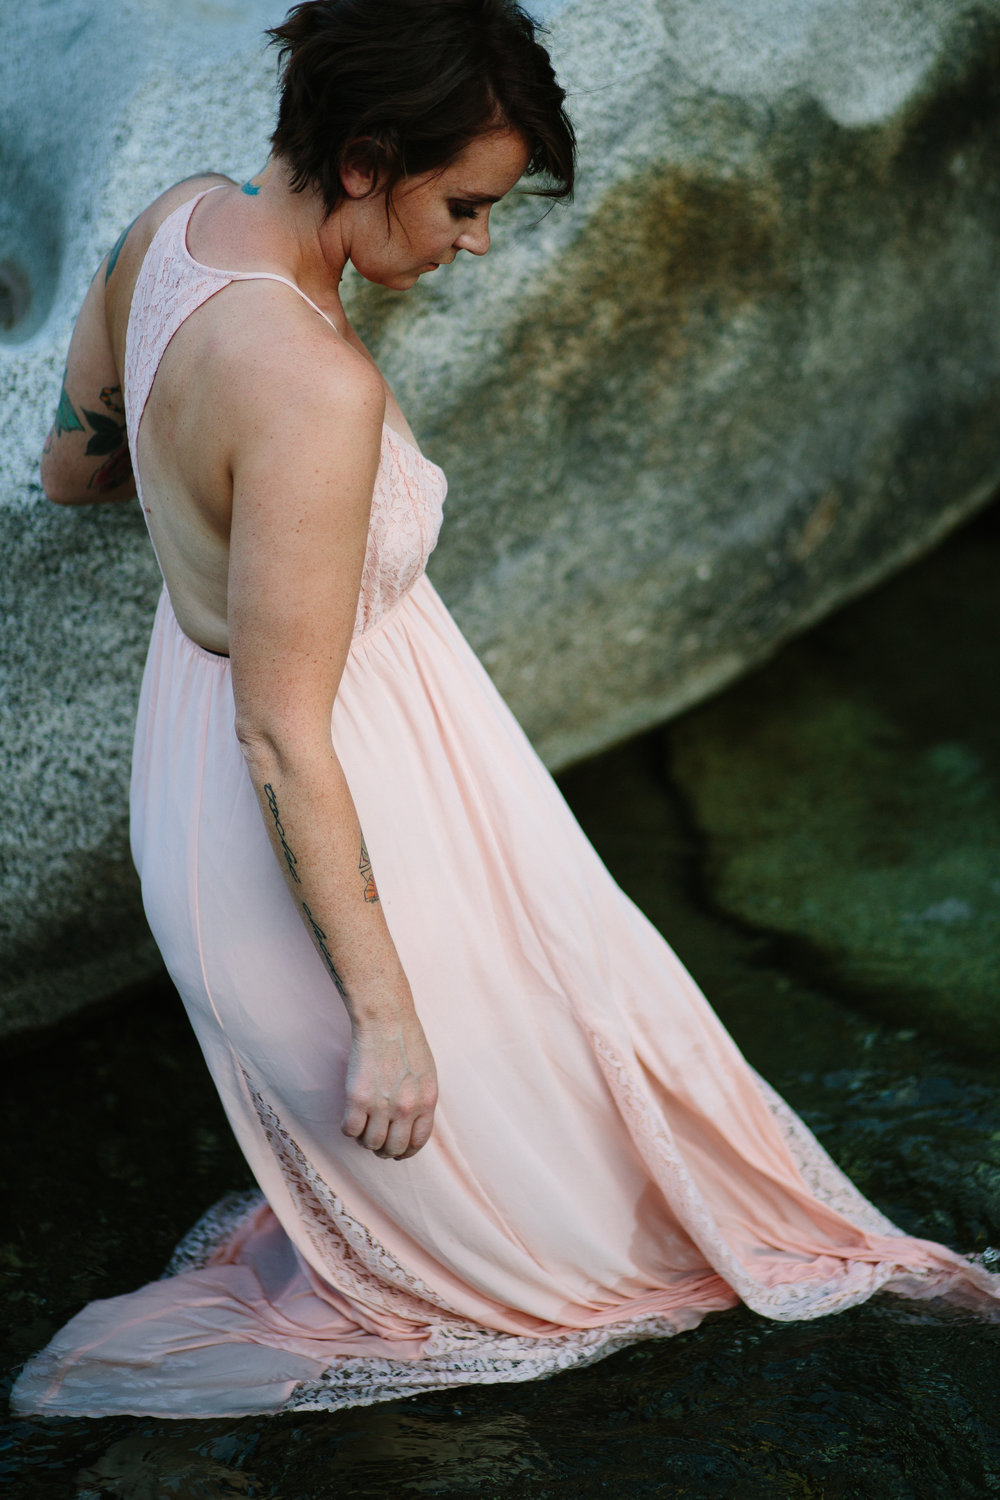 Yuba River Beauty Boudoir (71 of 80).jpg